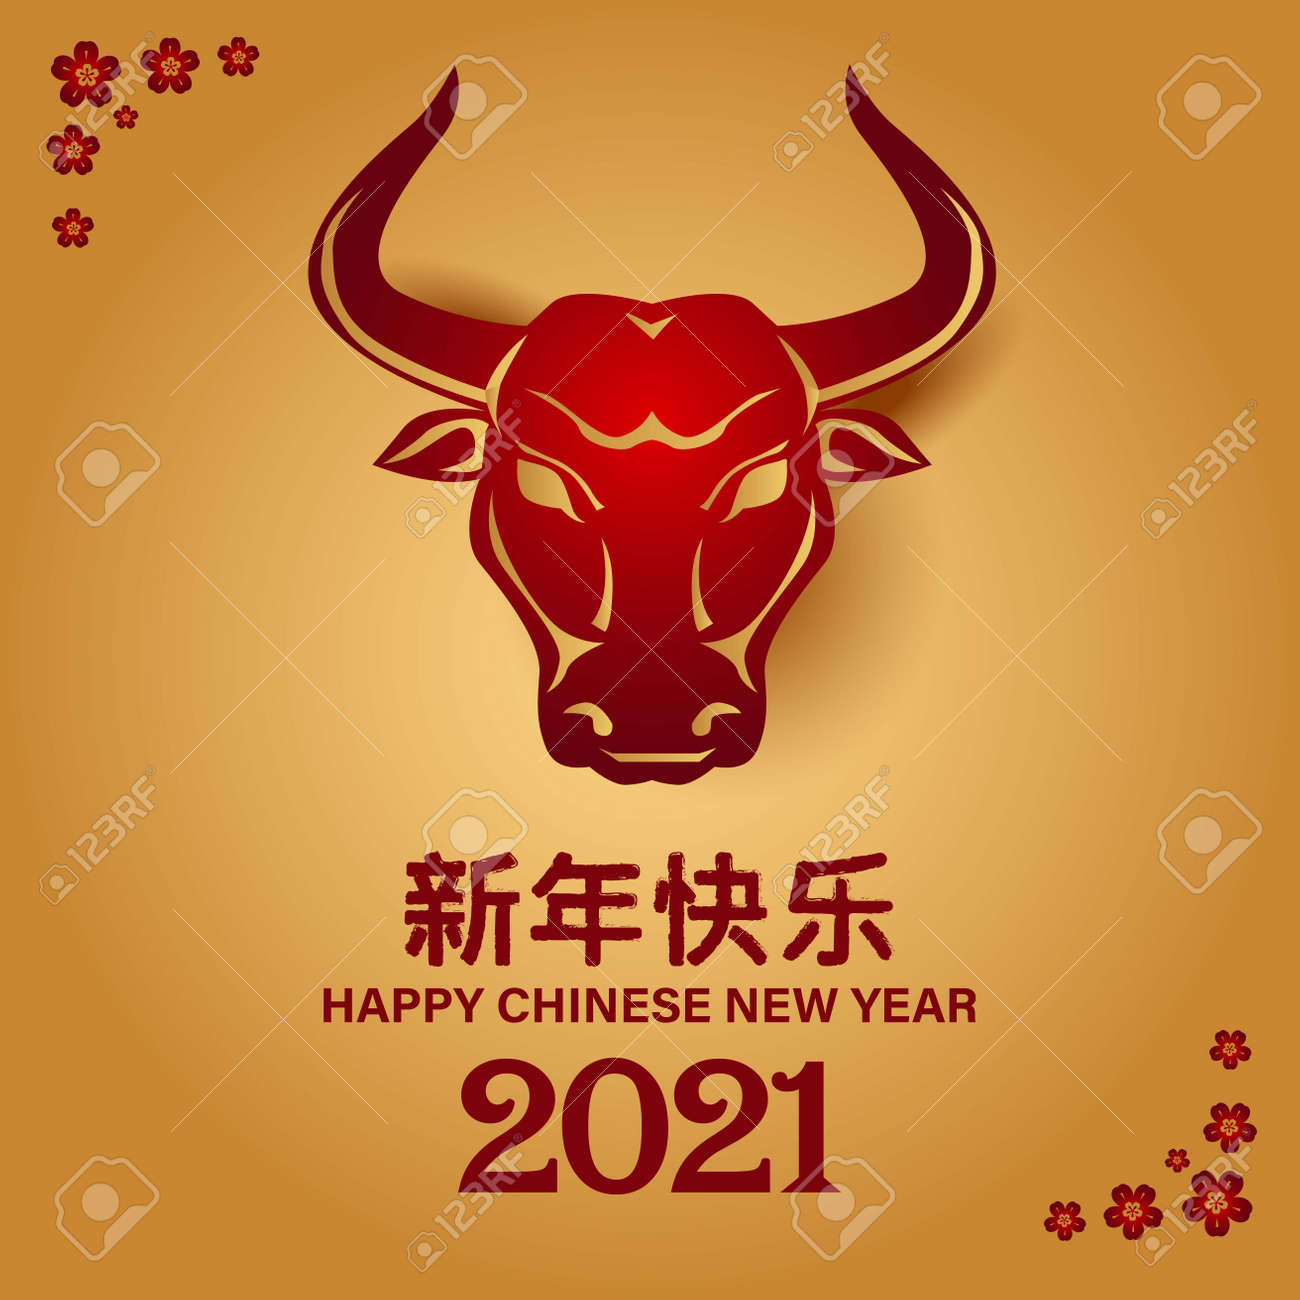 2021 Happy Chinese new year with Ox Zodiac sign. banner, greeting card, flyers, poster. vector illustration - 162465387